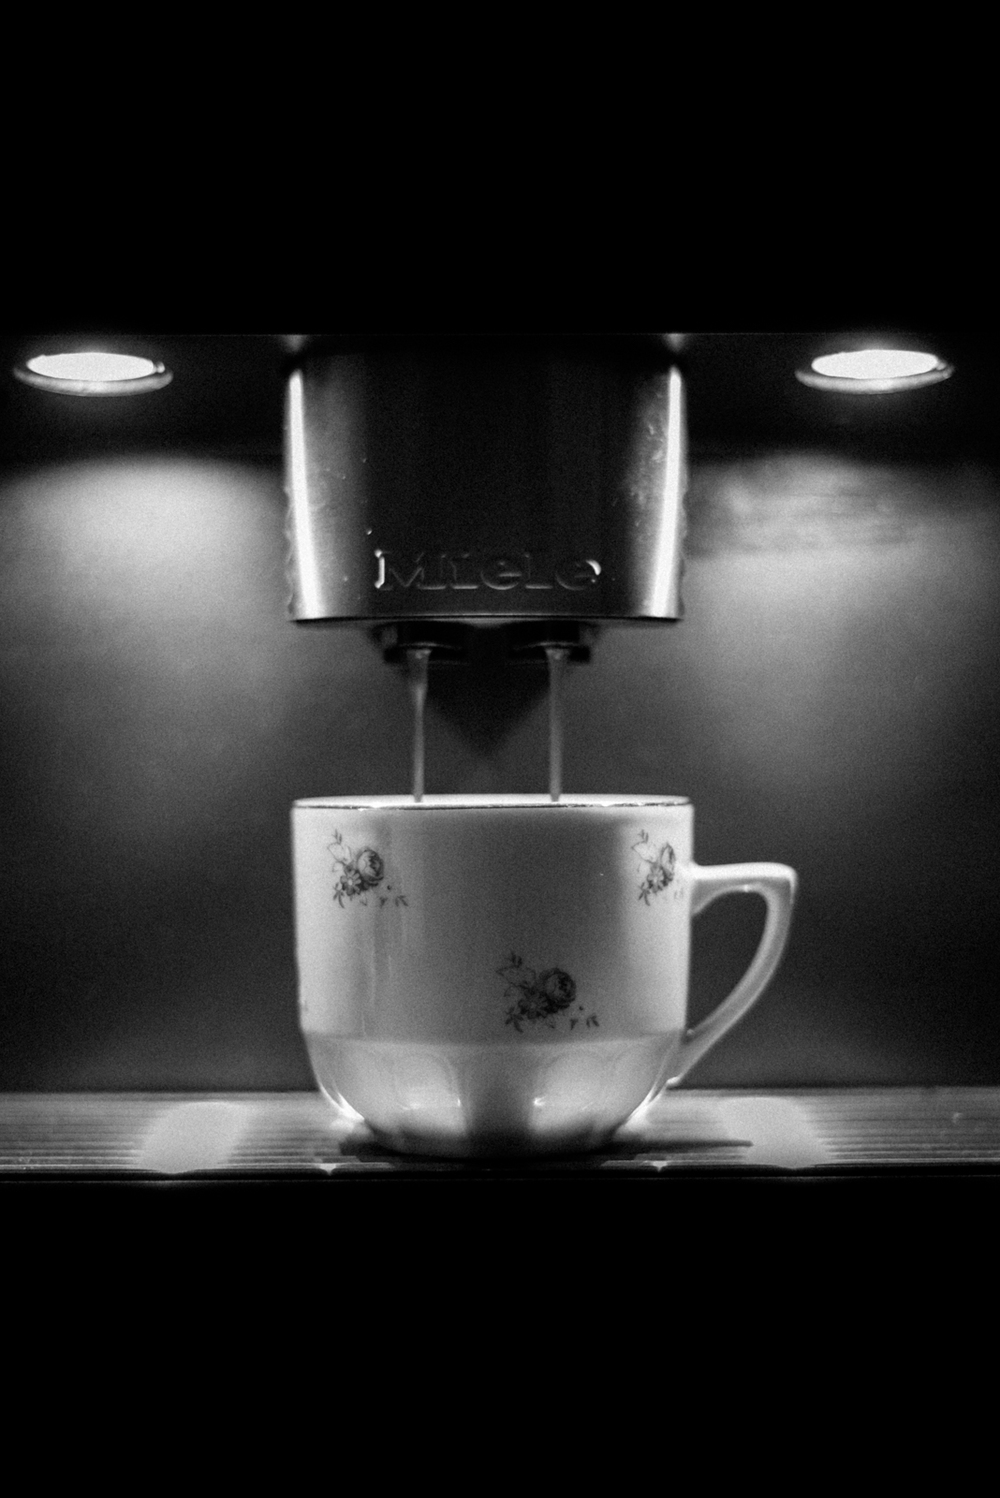 Project 365: #226 - Coffee